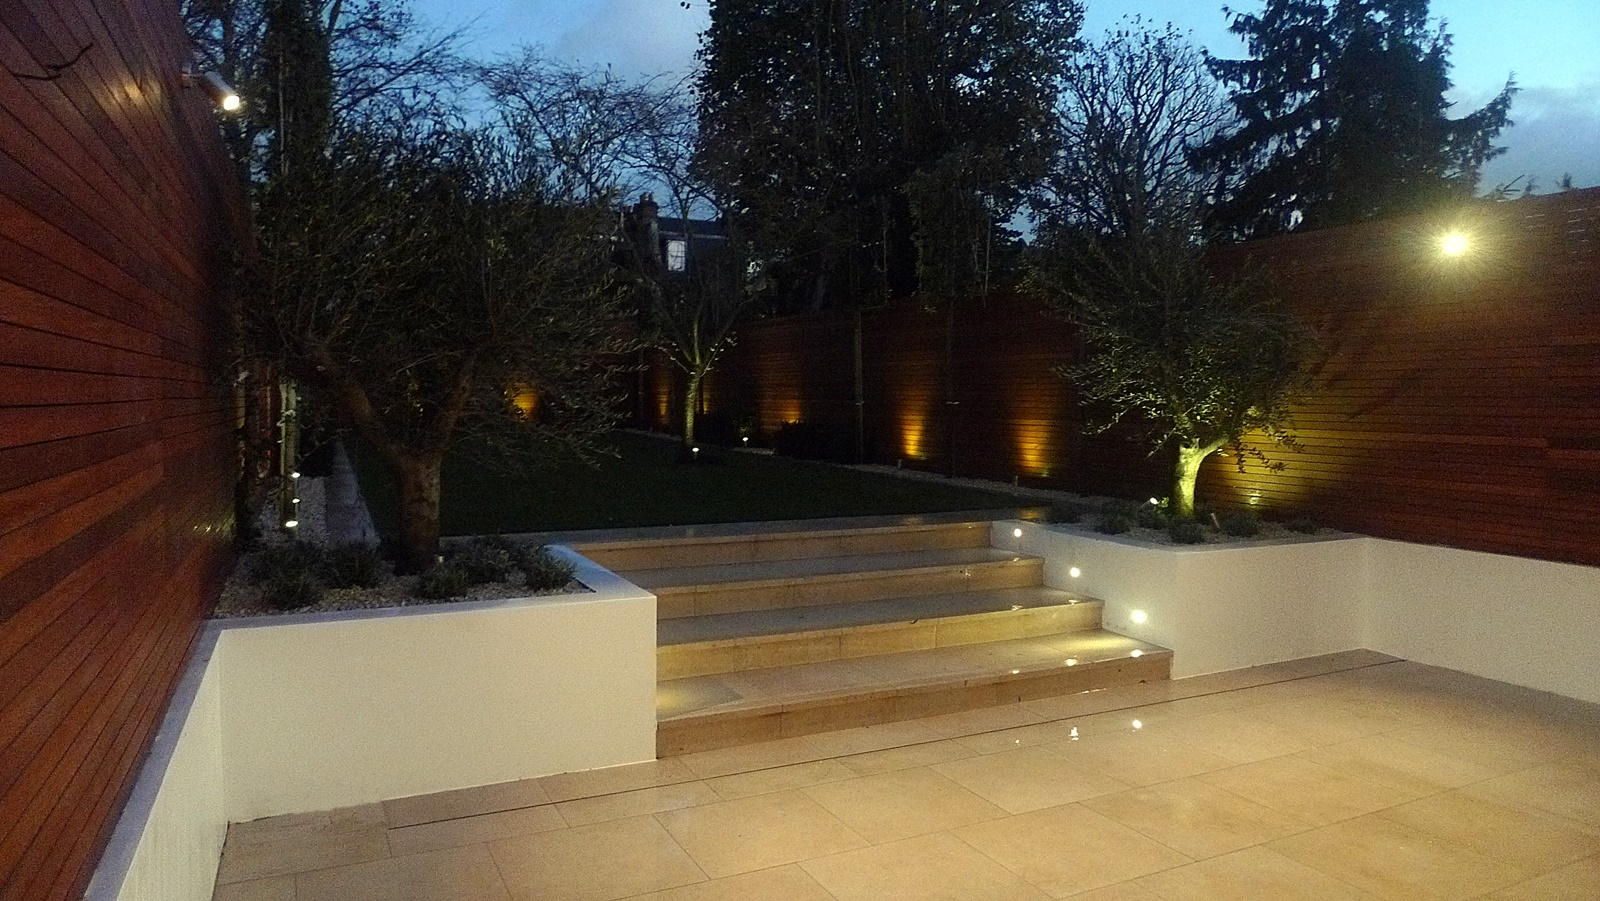 cream tiles pleached trees artificial grass garden lighting hardwood garden privacy screen trellis horizontal screen wandsworth clapham fulham chelsea kensington balham london